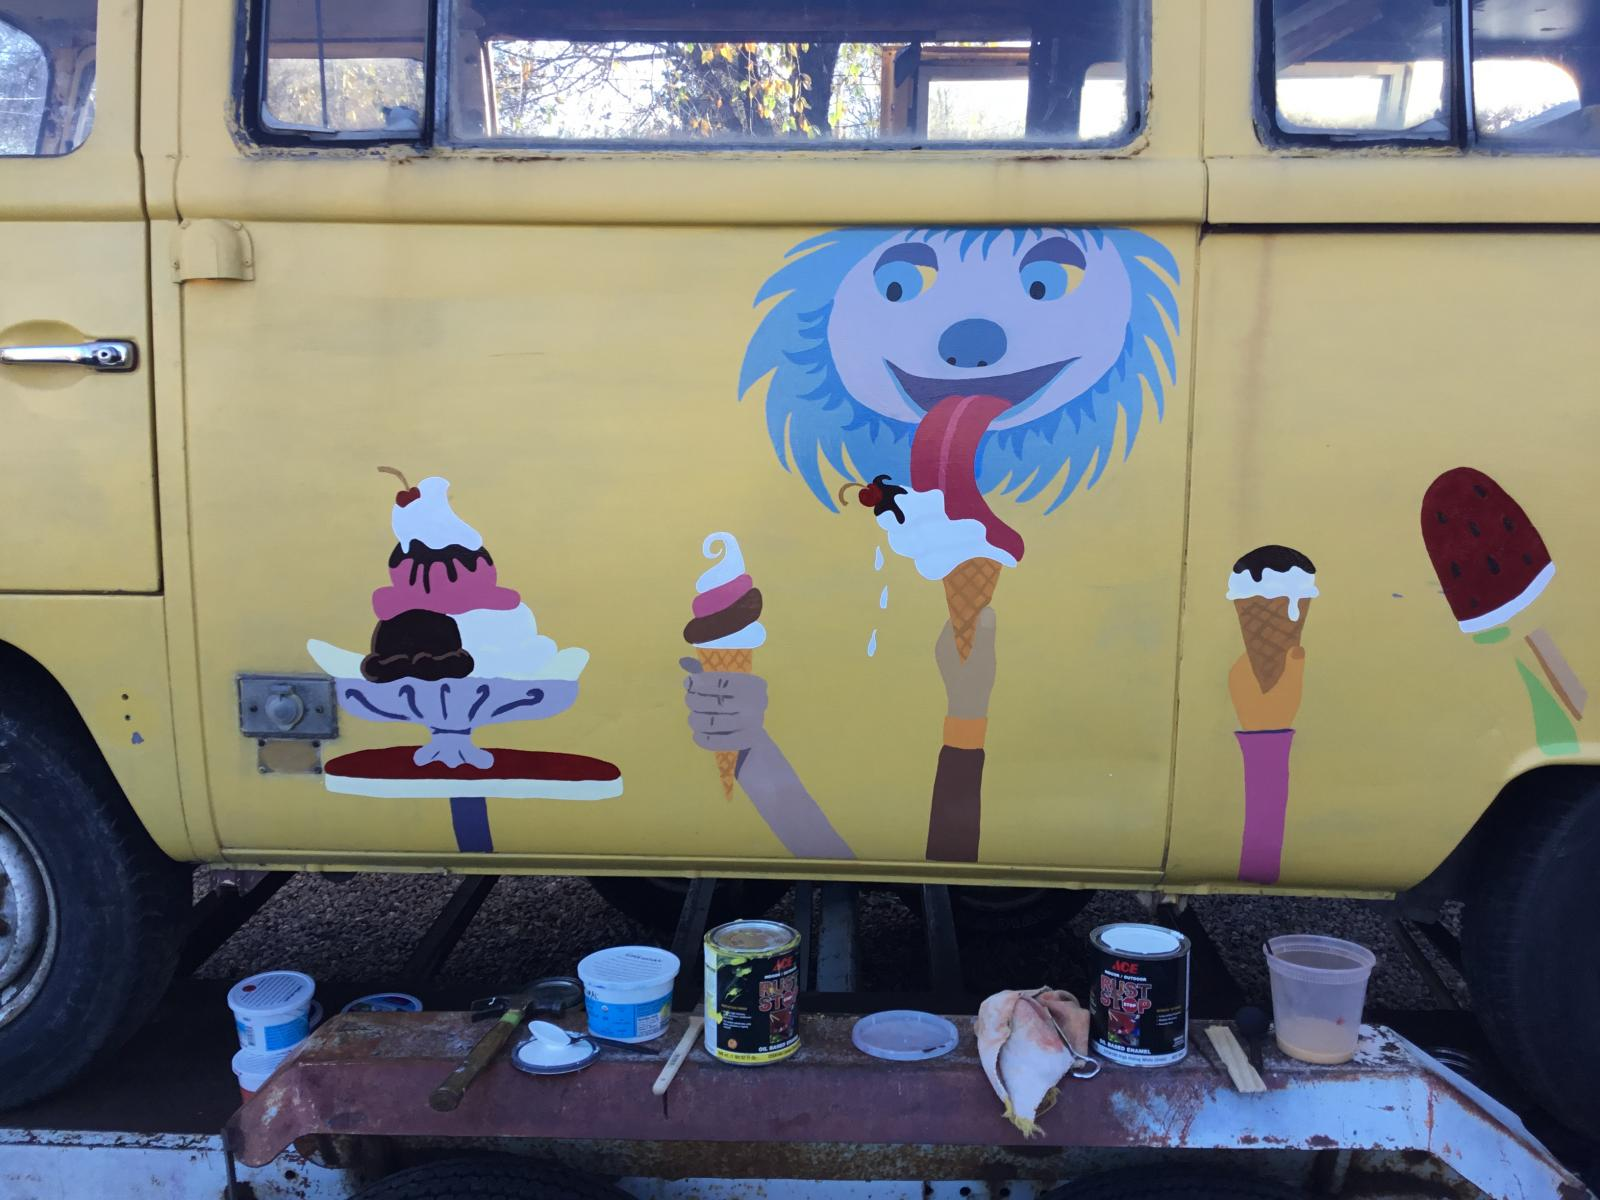 New art on old ice cream bus